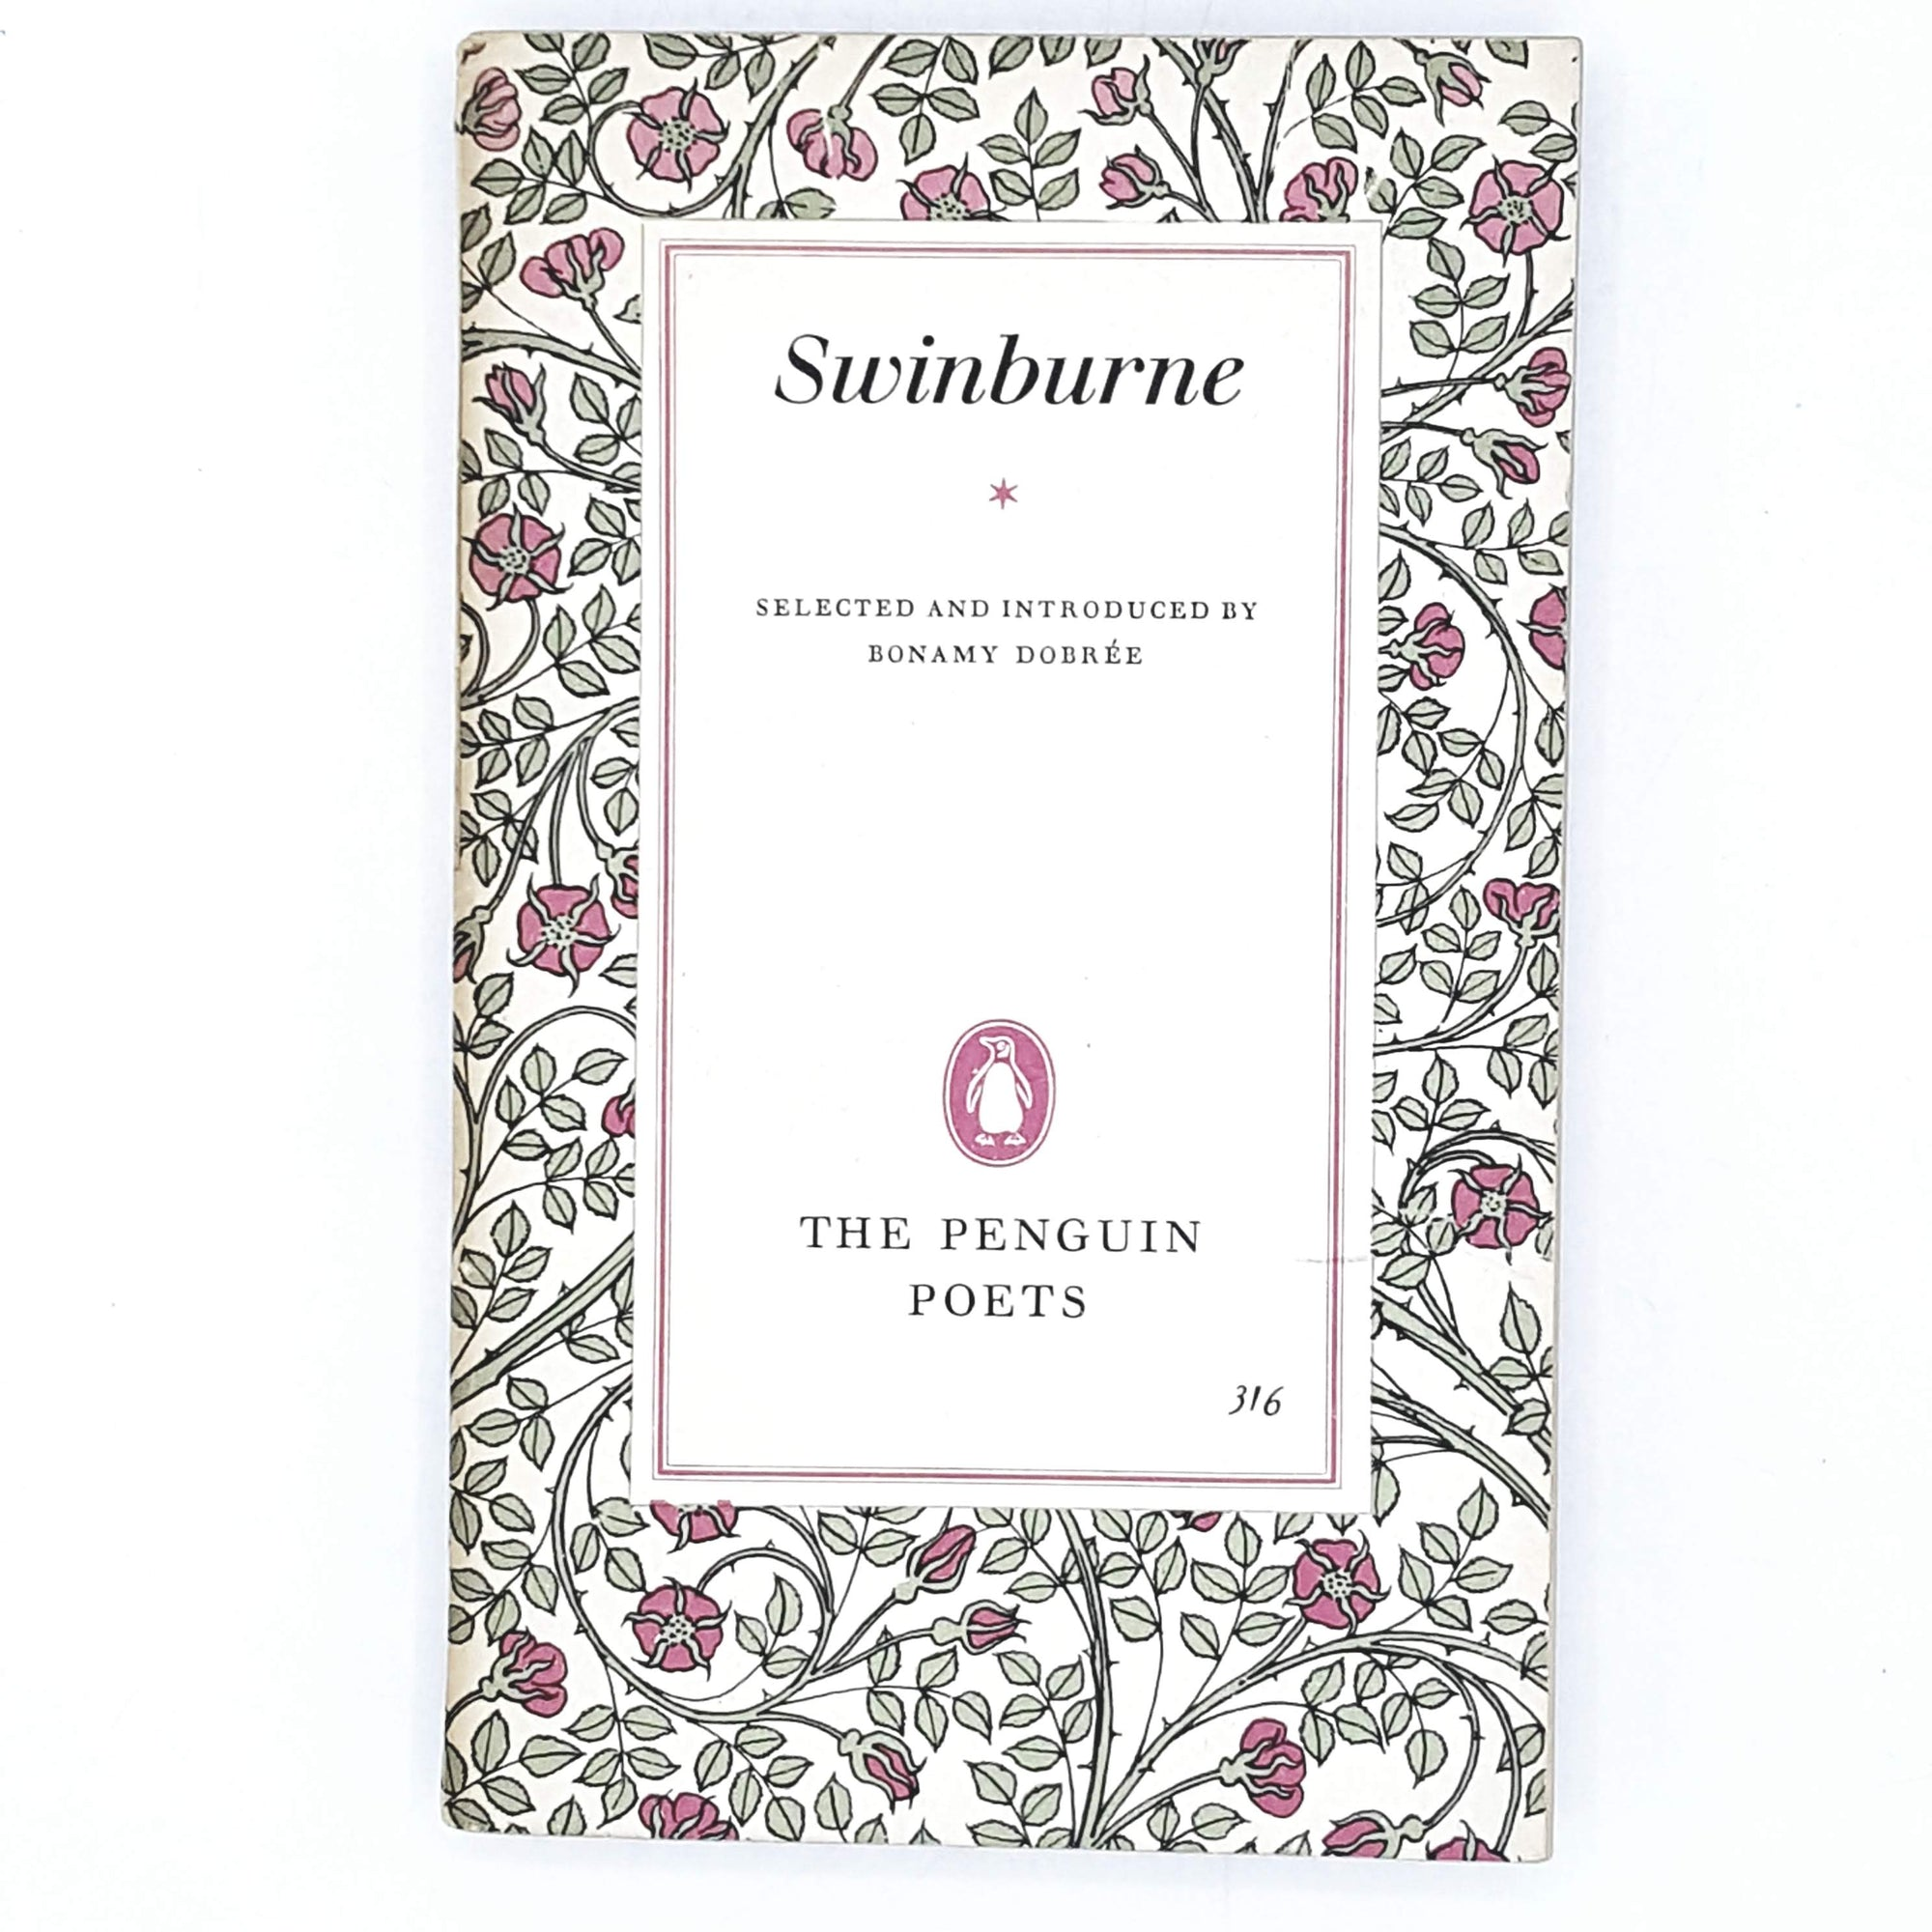 vintage-penguin-swinburne-poetry-first-edition-flowers